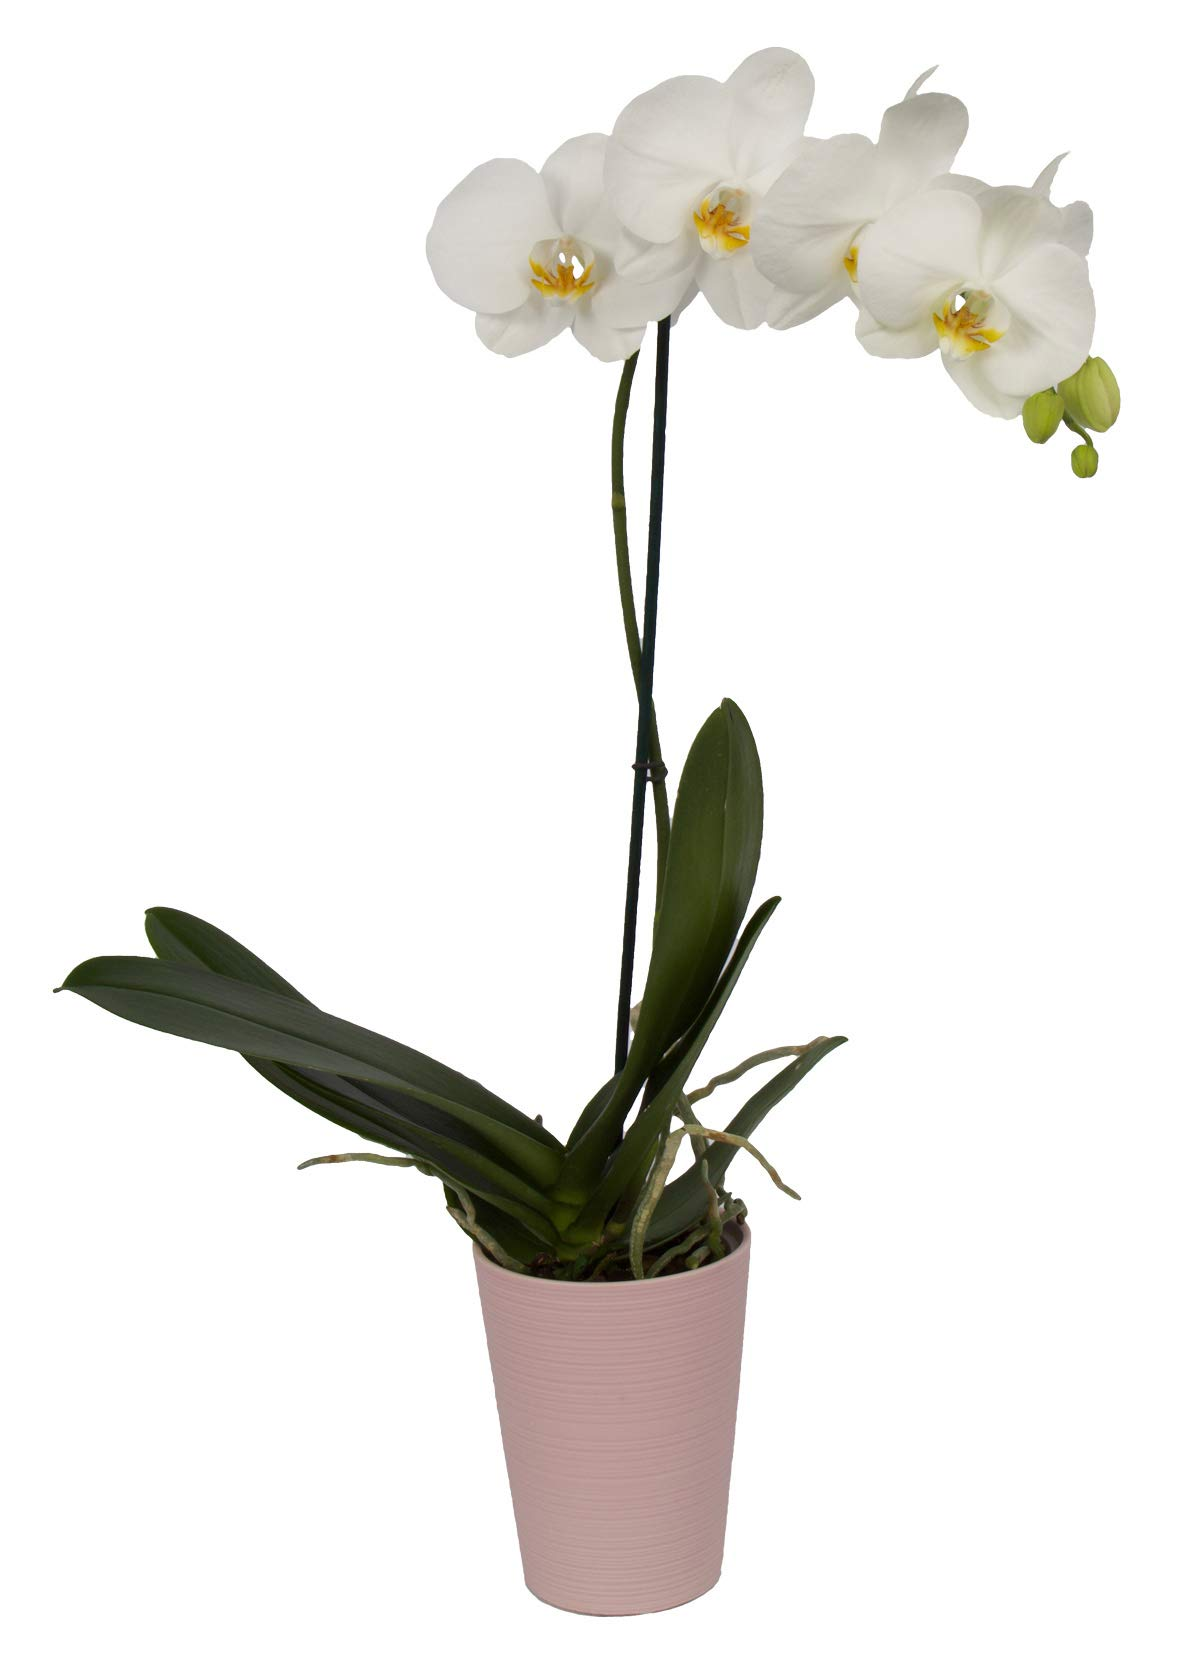 Color Orchids AMZ1101DP1W Live Blooming Single Stem Phalaenopsis Orchid Plant in Ceramic Pot, 20''-24'' Tall, White Blooms by Color Orchids